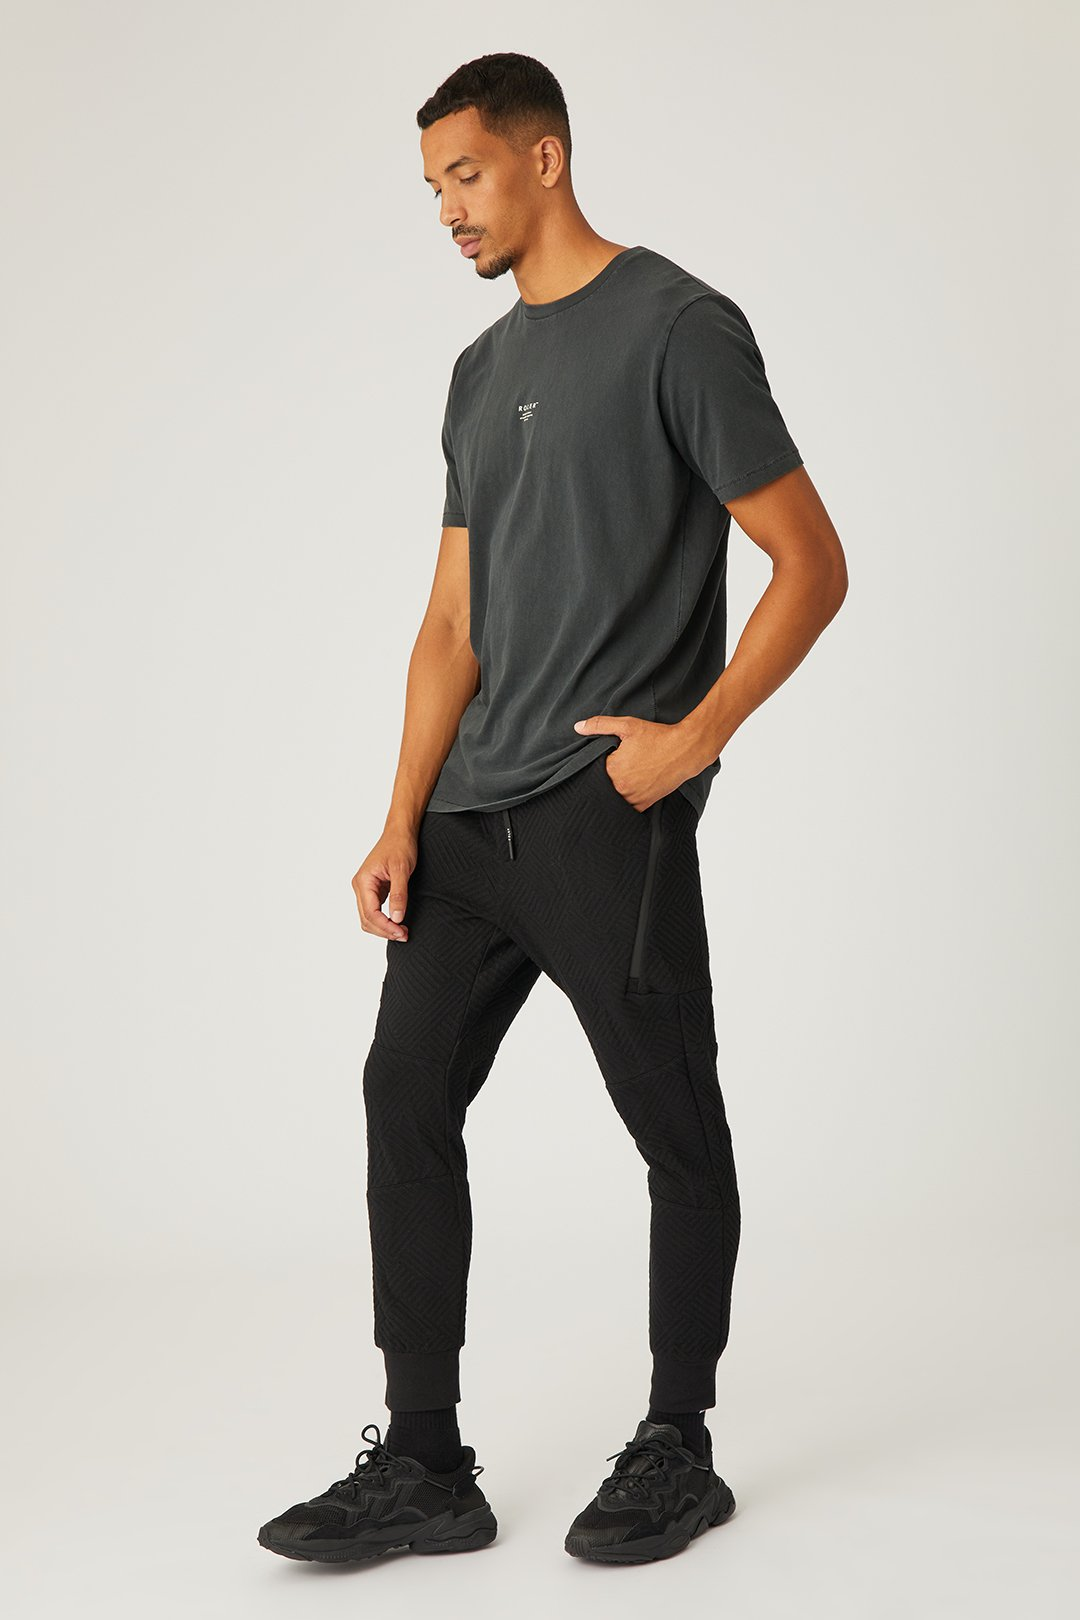 The Lexington Trackie - Black